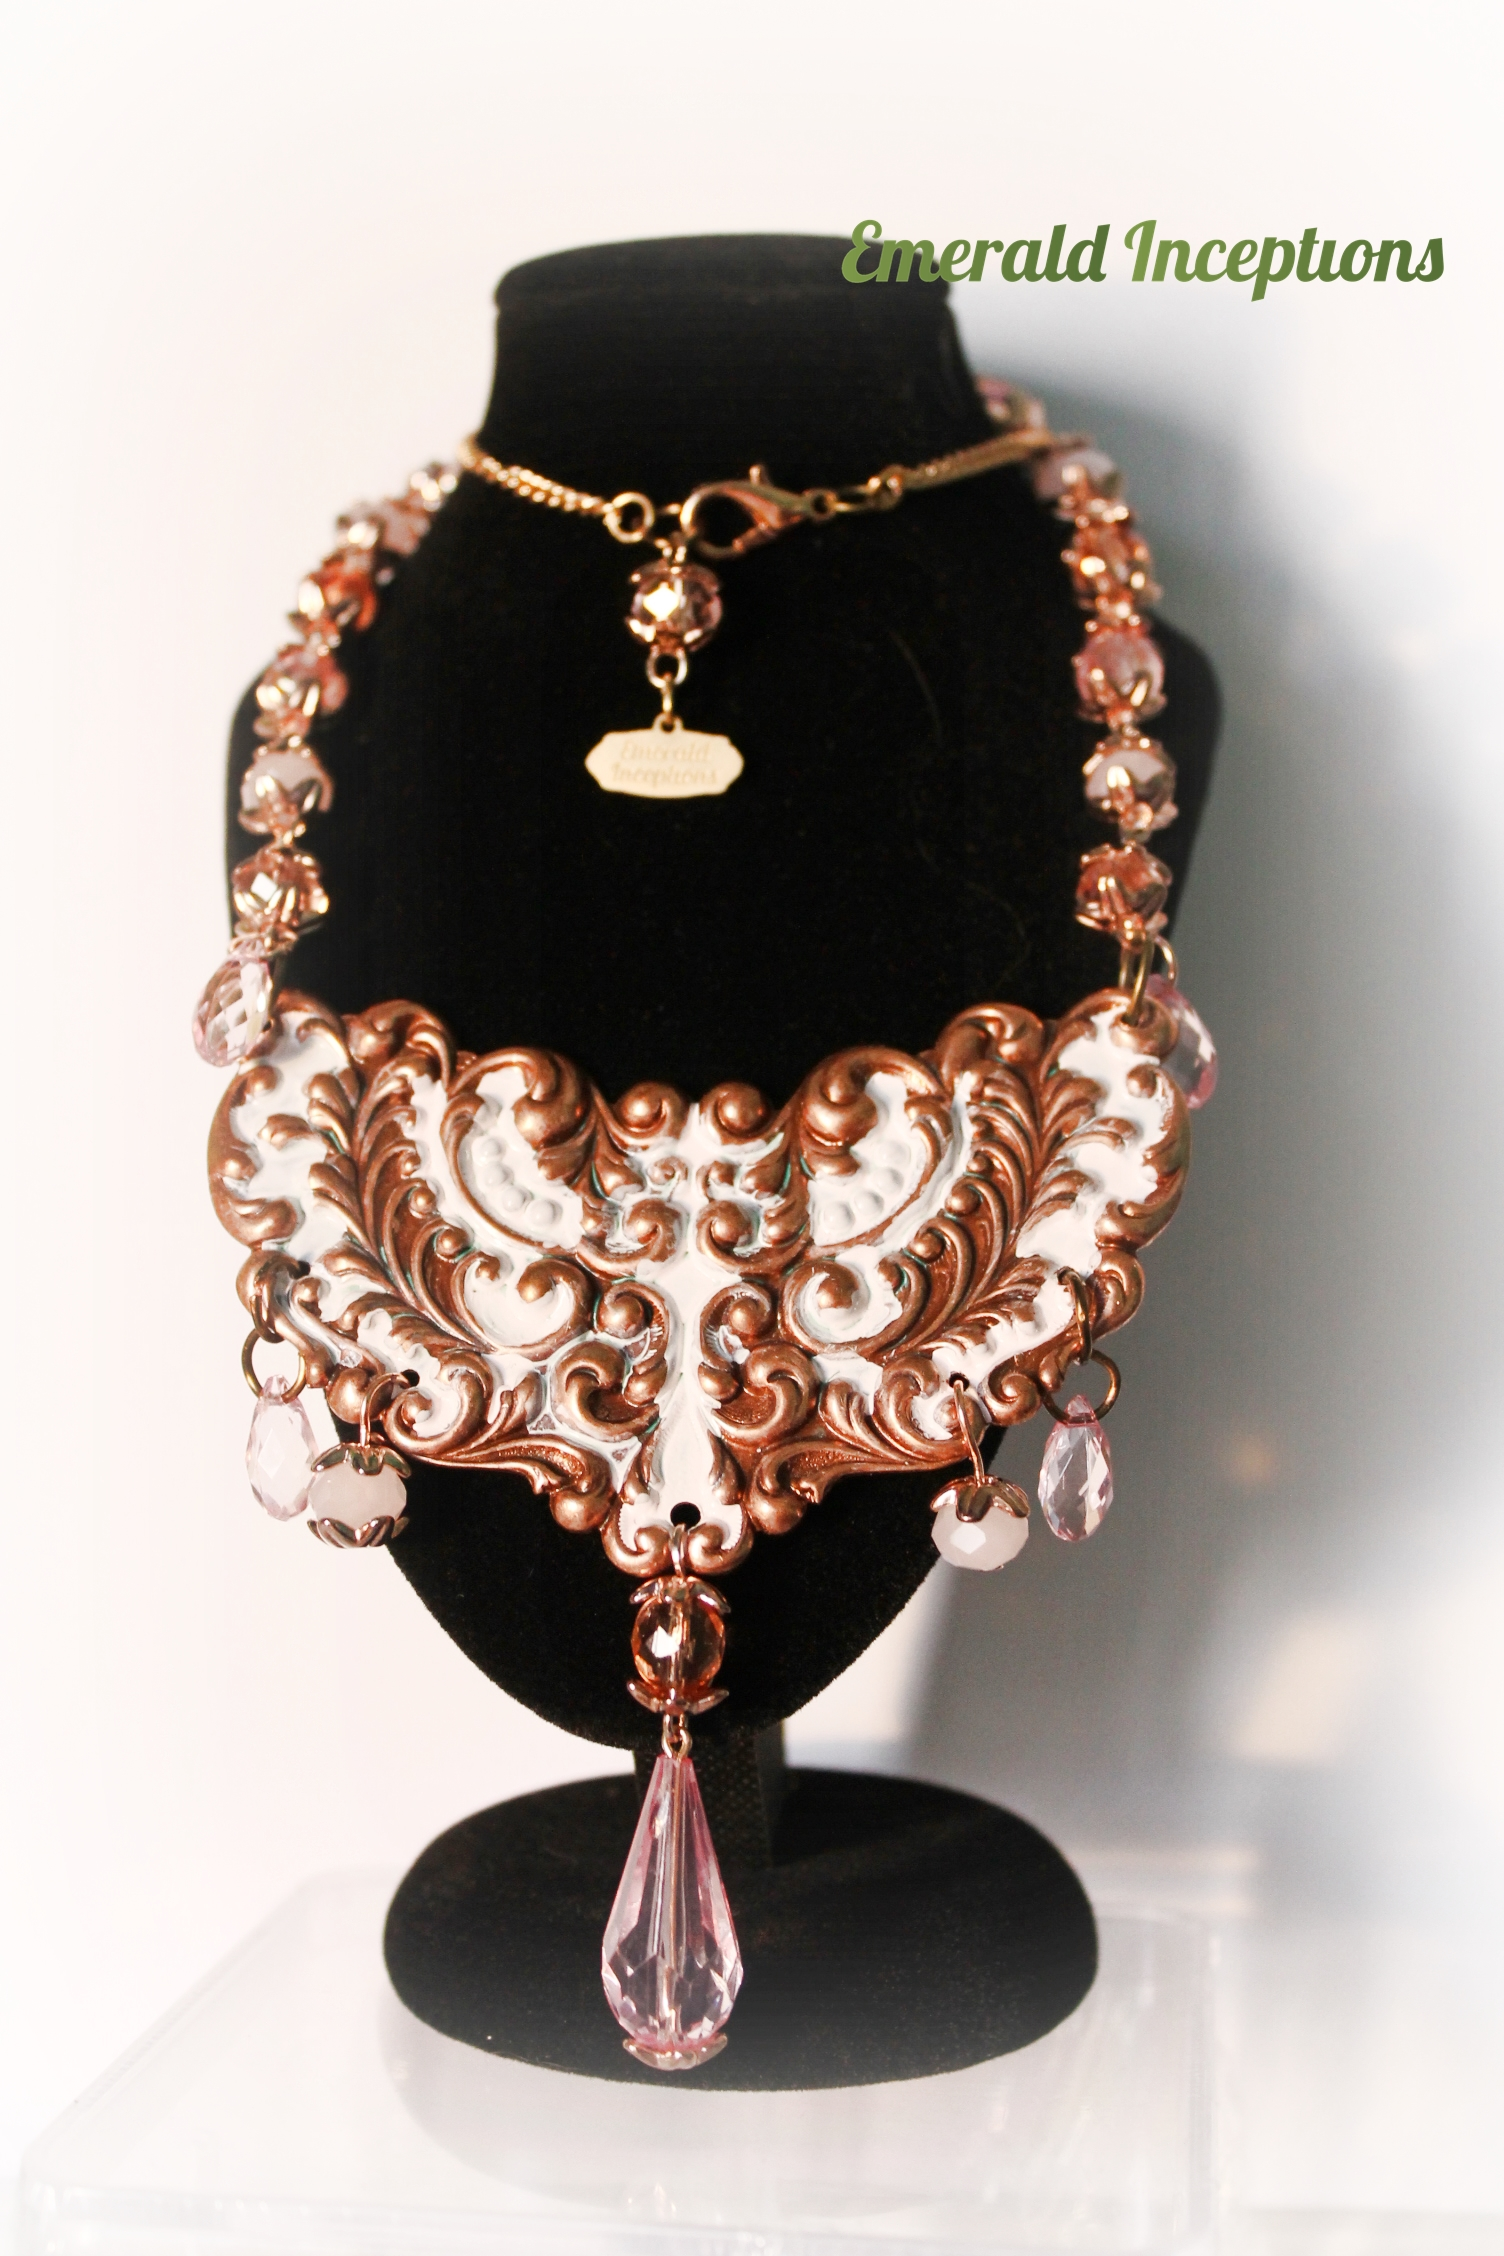 rose_fatale_pink_and_light_copper_necklace_earrings_4.JPG